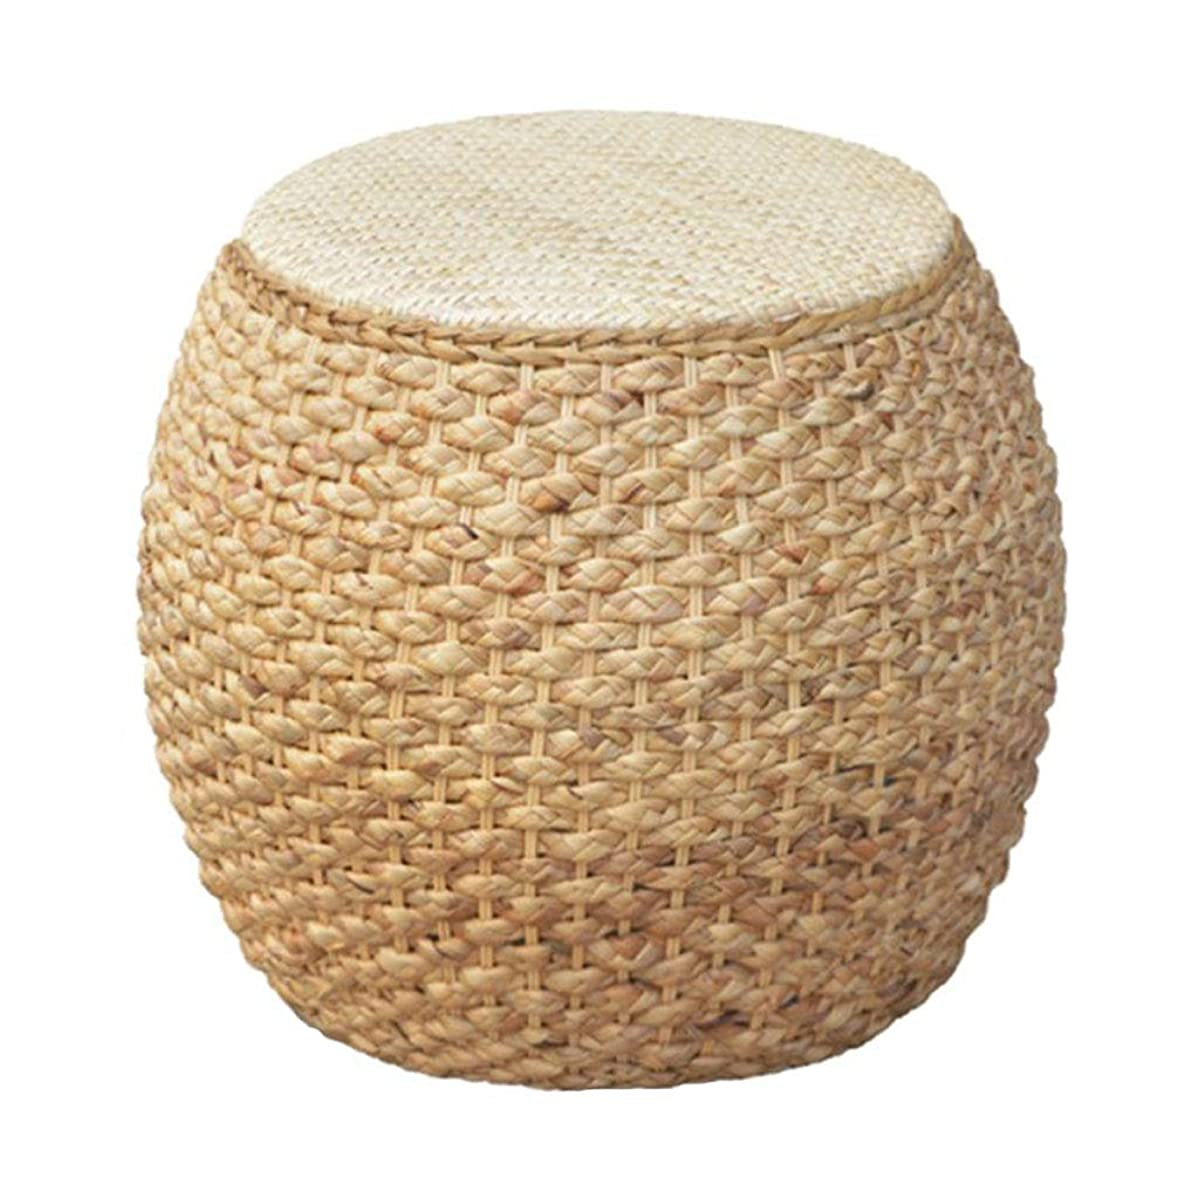 Home Dining Stool/Rattan Footstool, Simple Round Coffee Table Stool Rustic Style Pouf, Suitable for Living Room, Courtyard, Bedroom